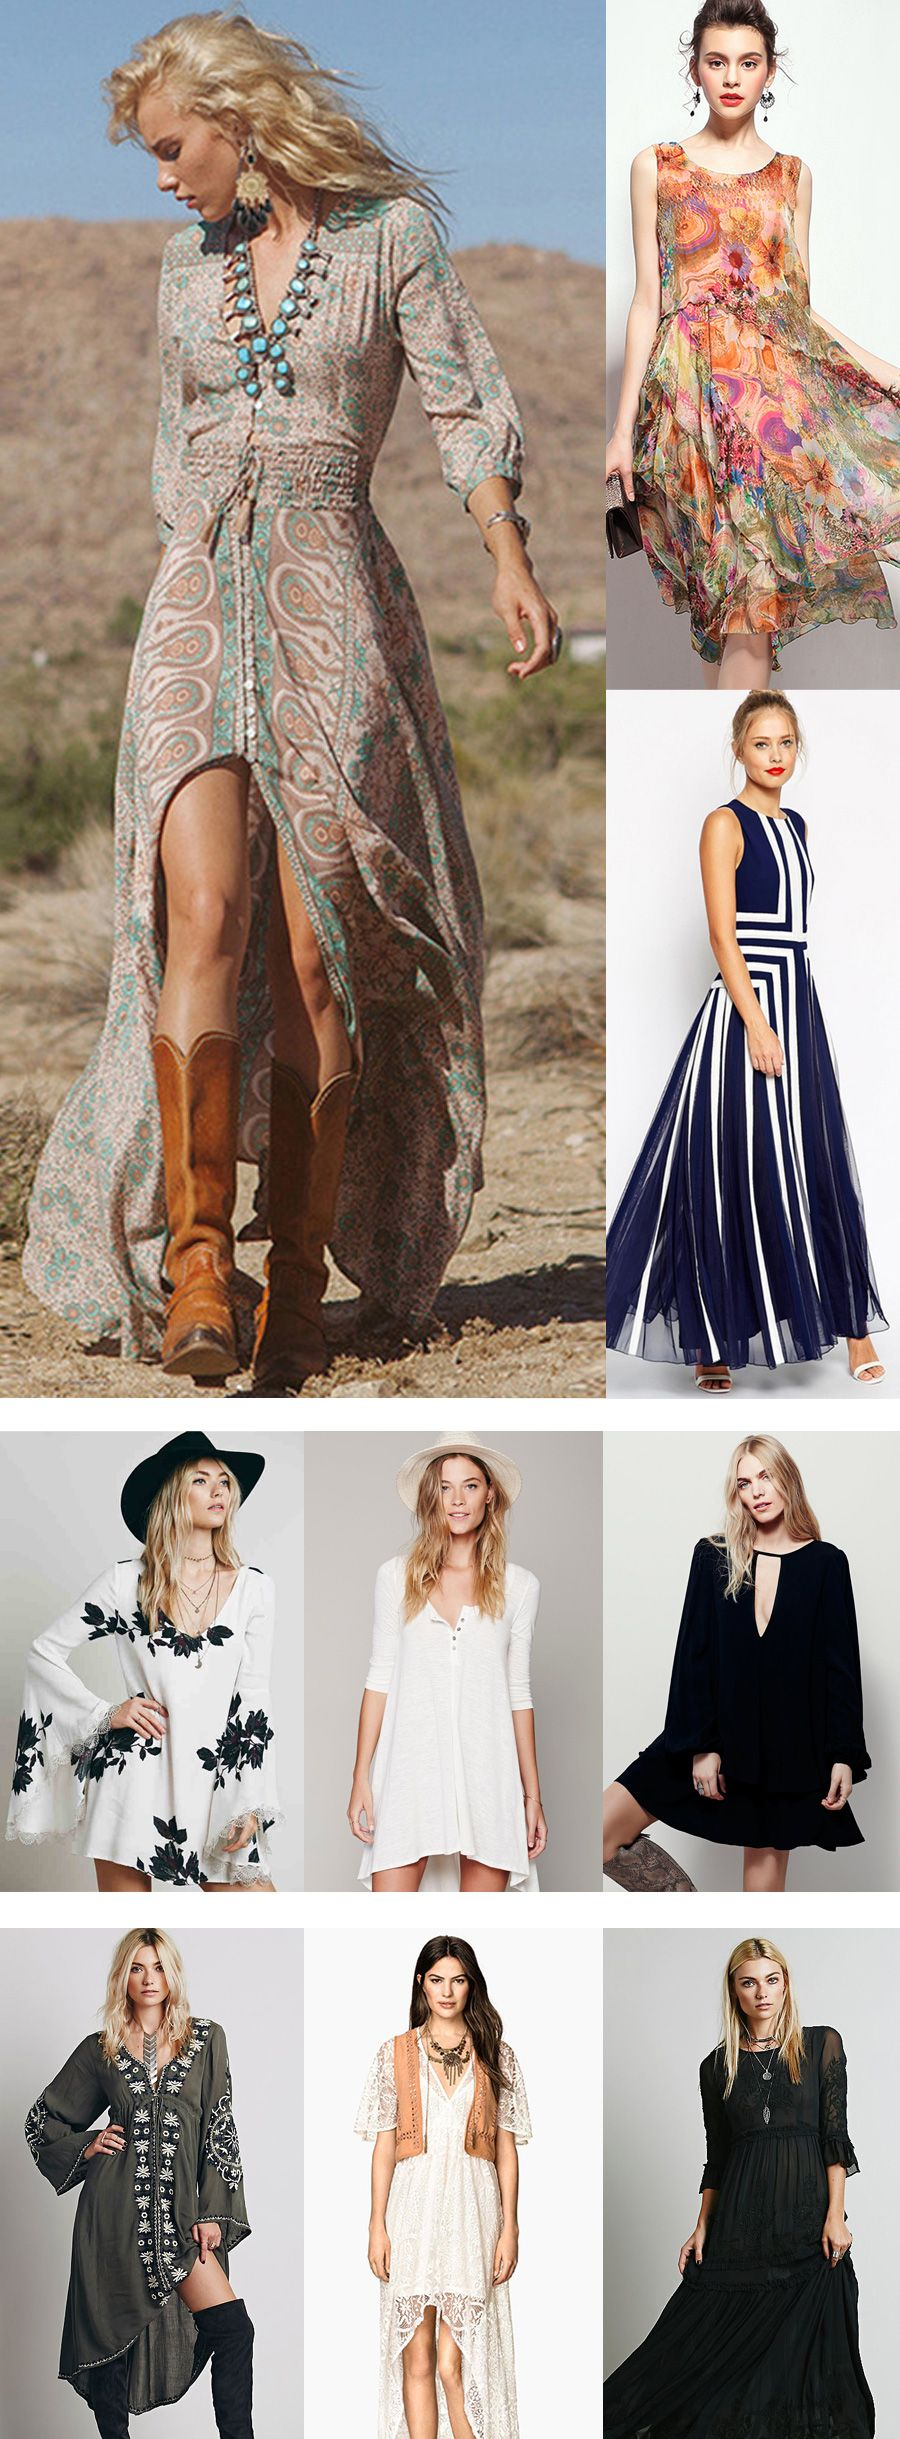 Shop the latest trends in women's clothing at Floryday